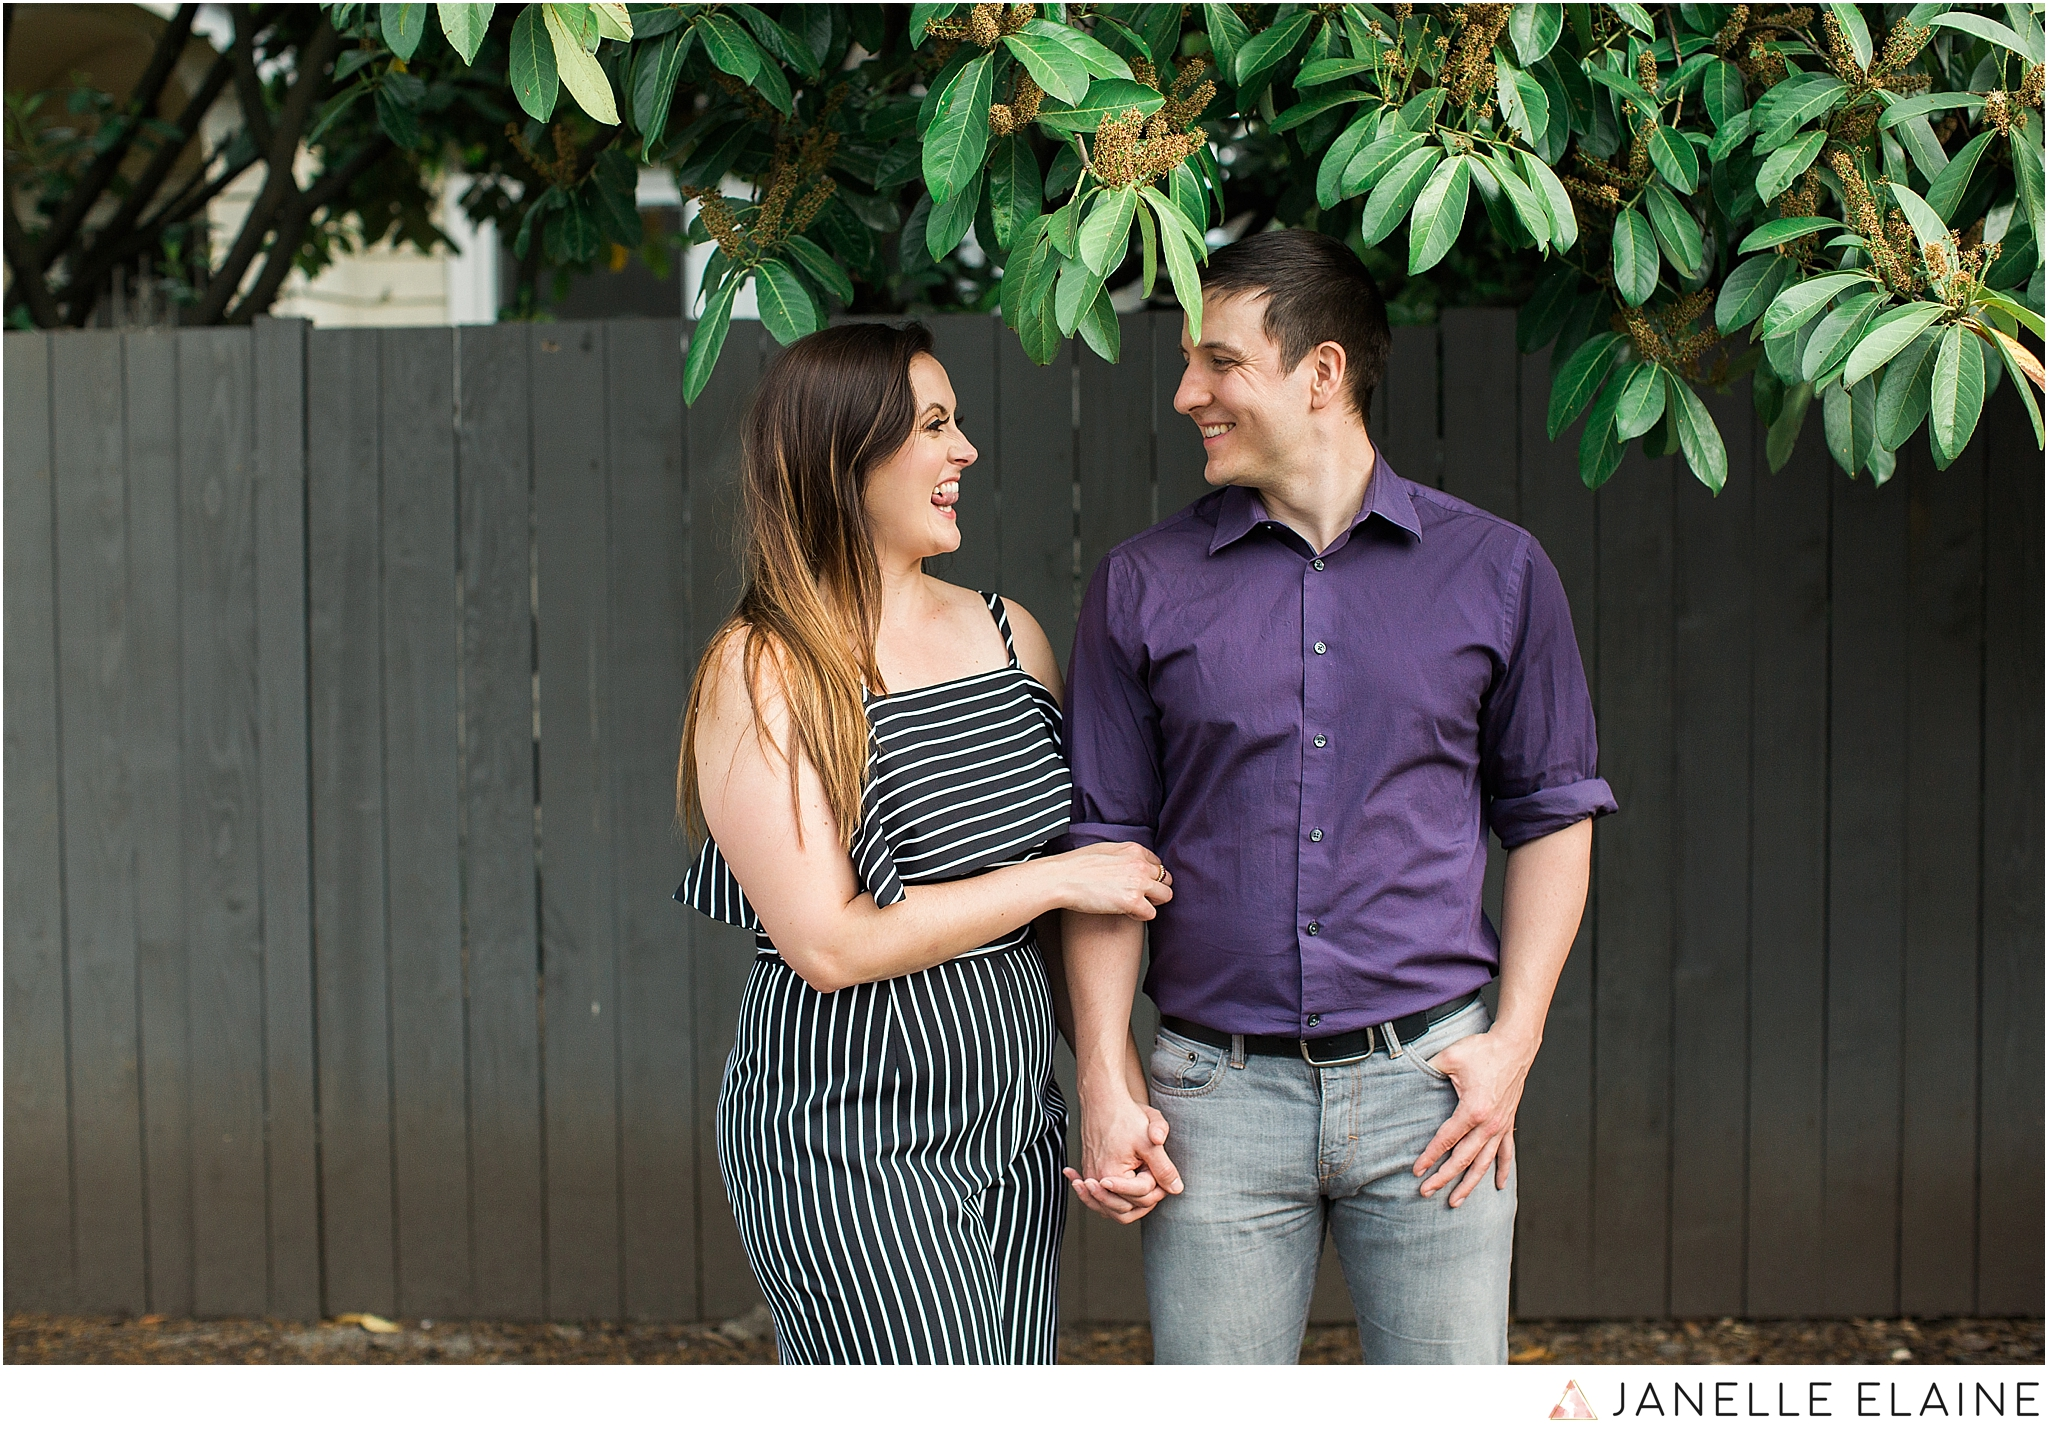 karen ethan-georgetown engagement photos-seattle-janelle elaine photography-186.jpg